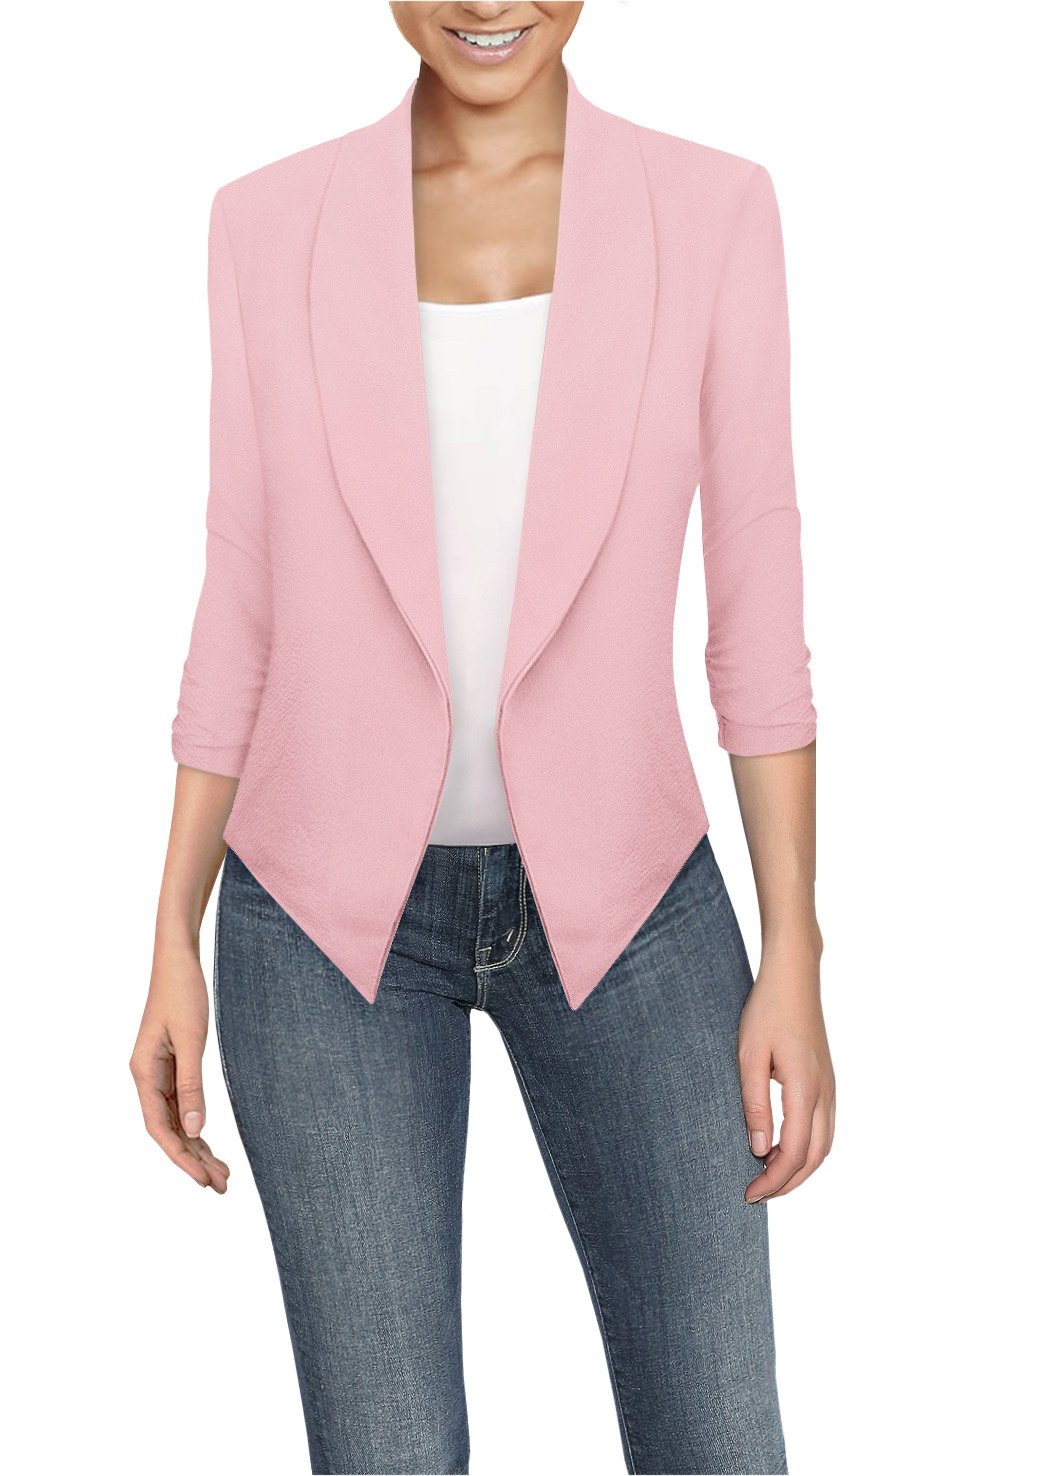 HyBrid & Company Womens Casual Work Office Open Front Blazer JK1133X Peach 1X